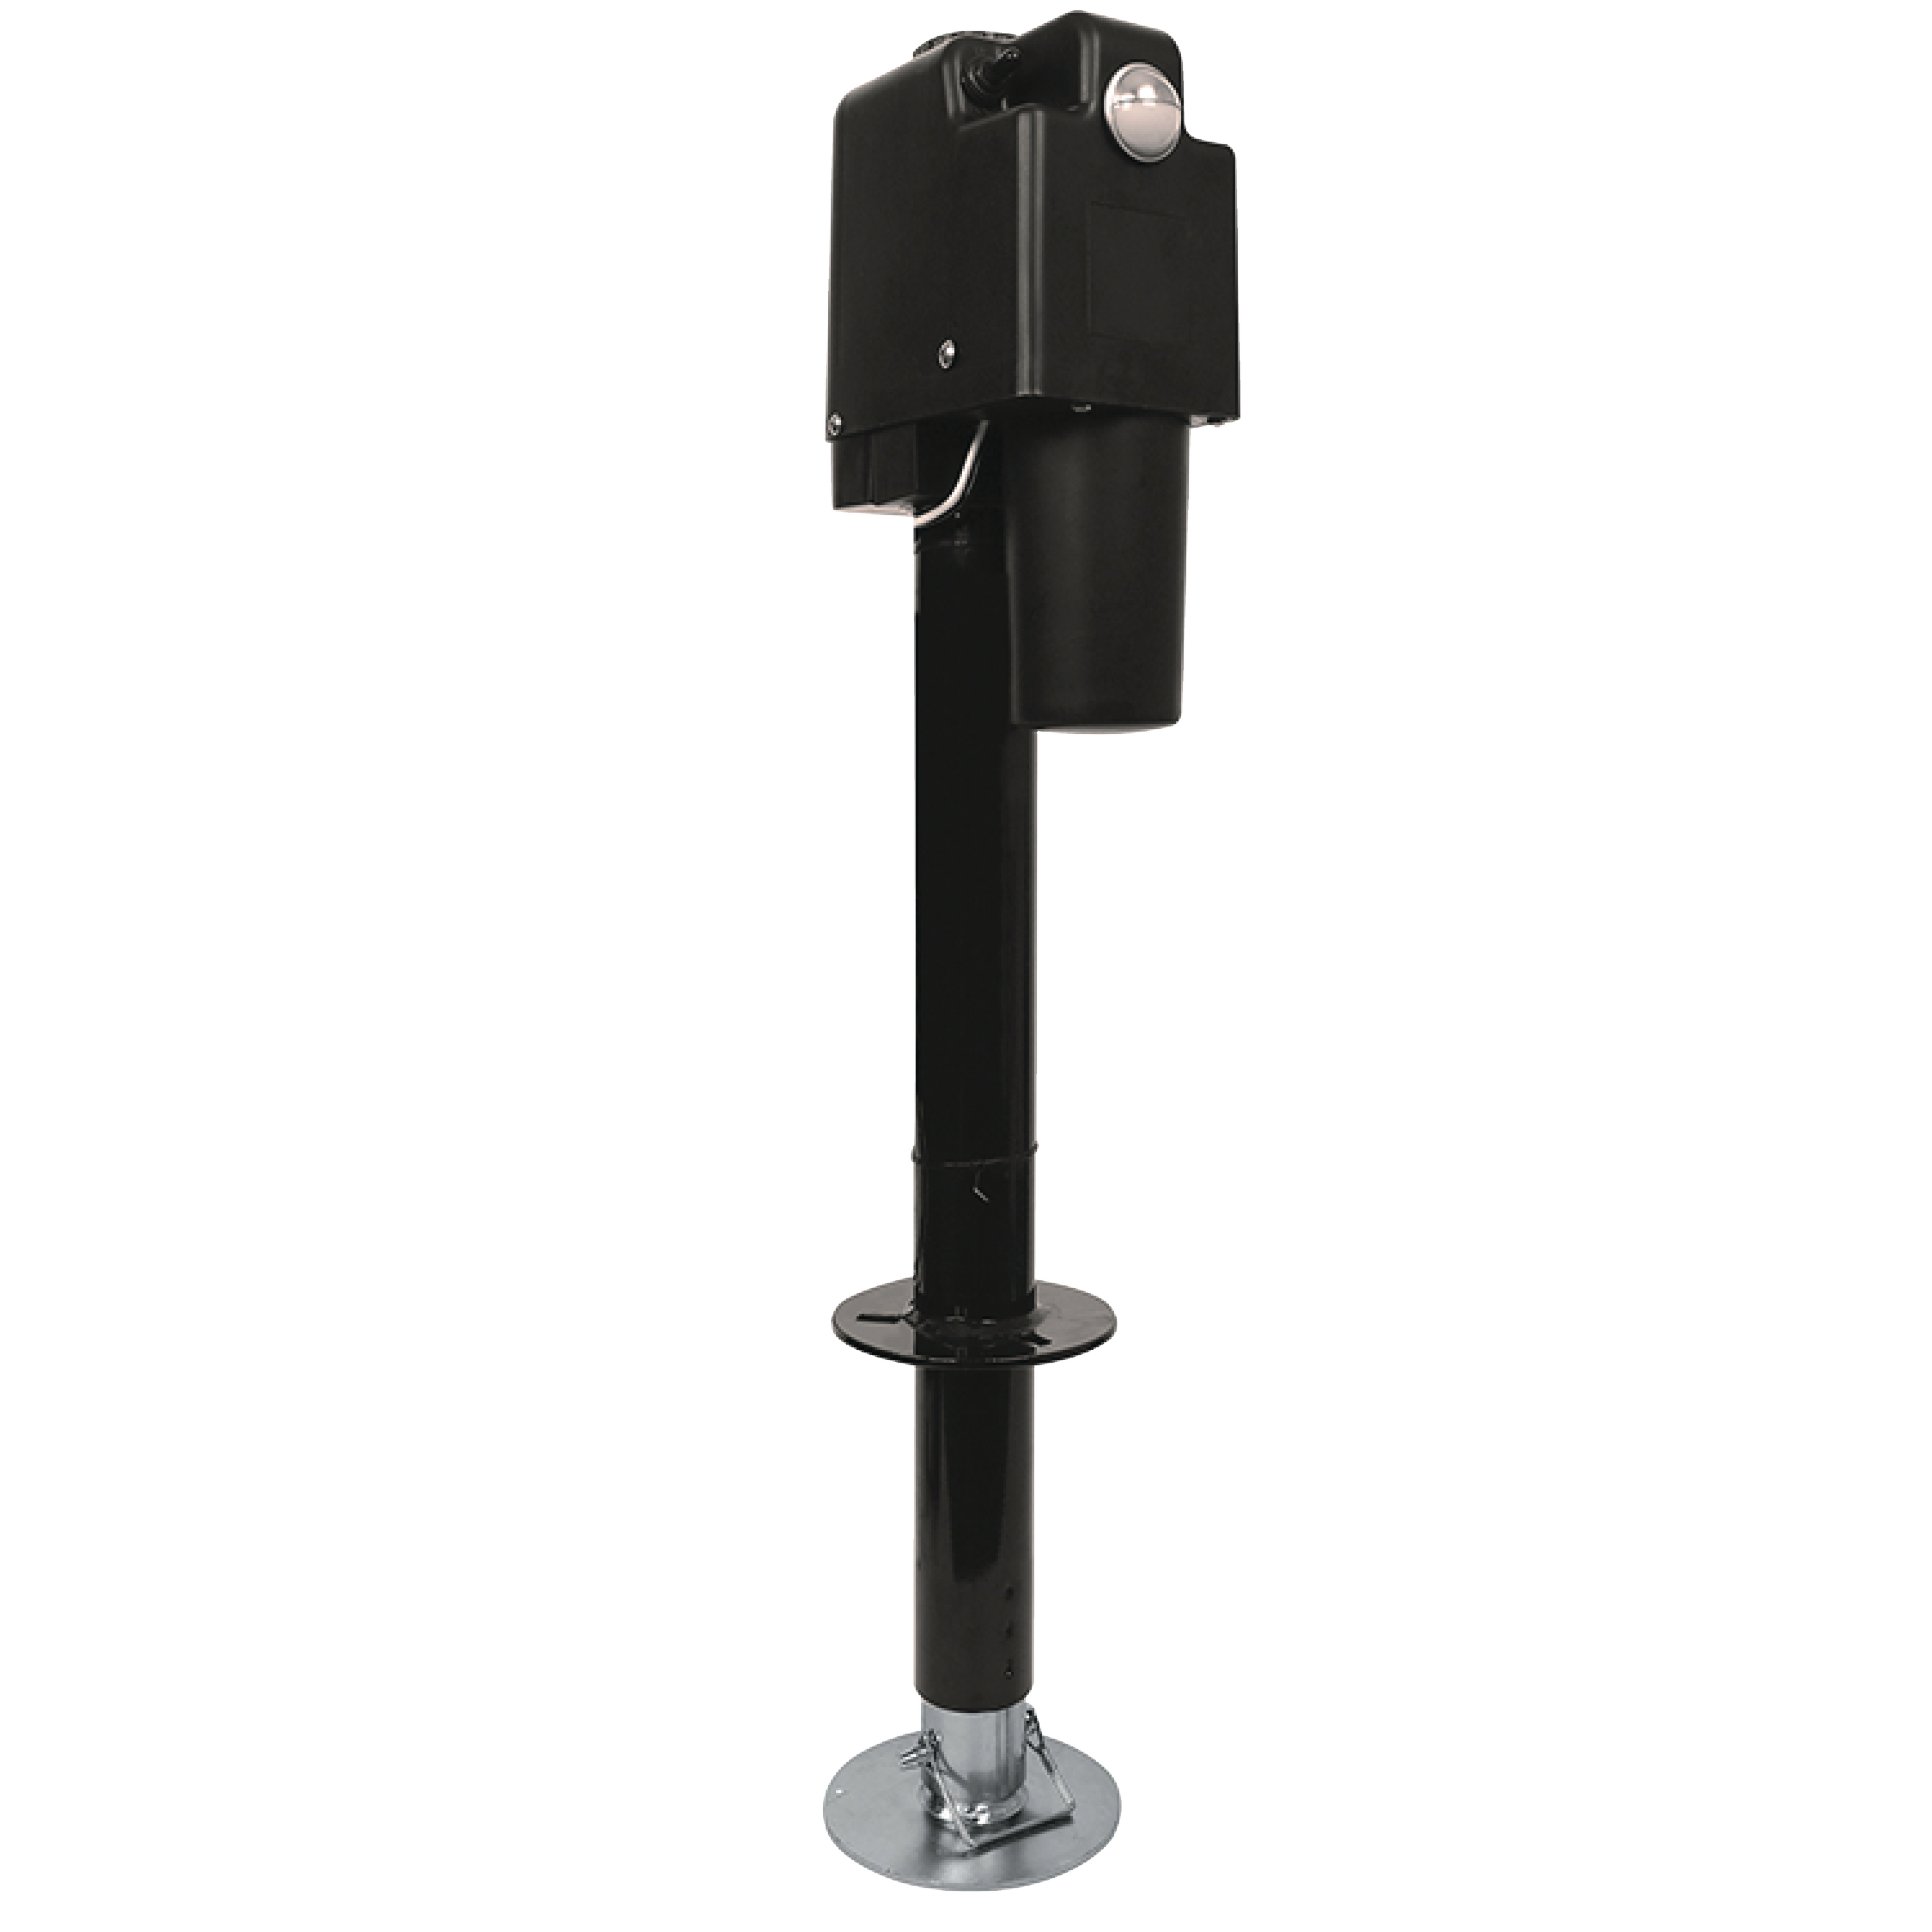 FulTyme RV Electric 3,500 lb Capacity Trailer Jack by FulTyme RV